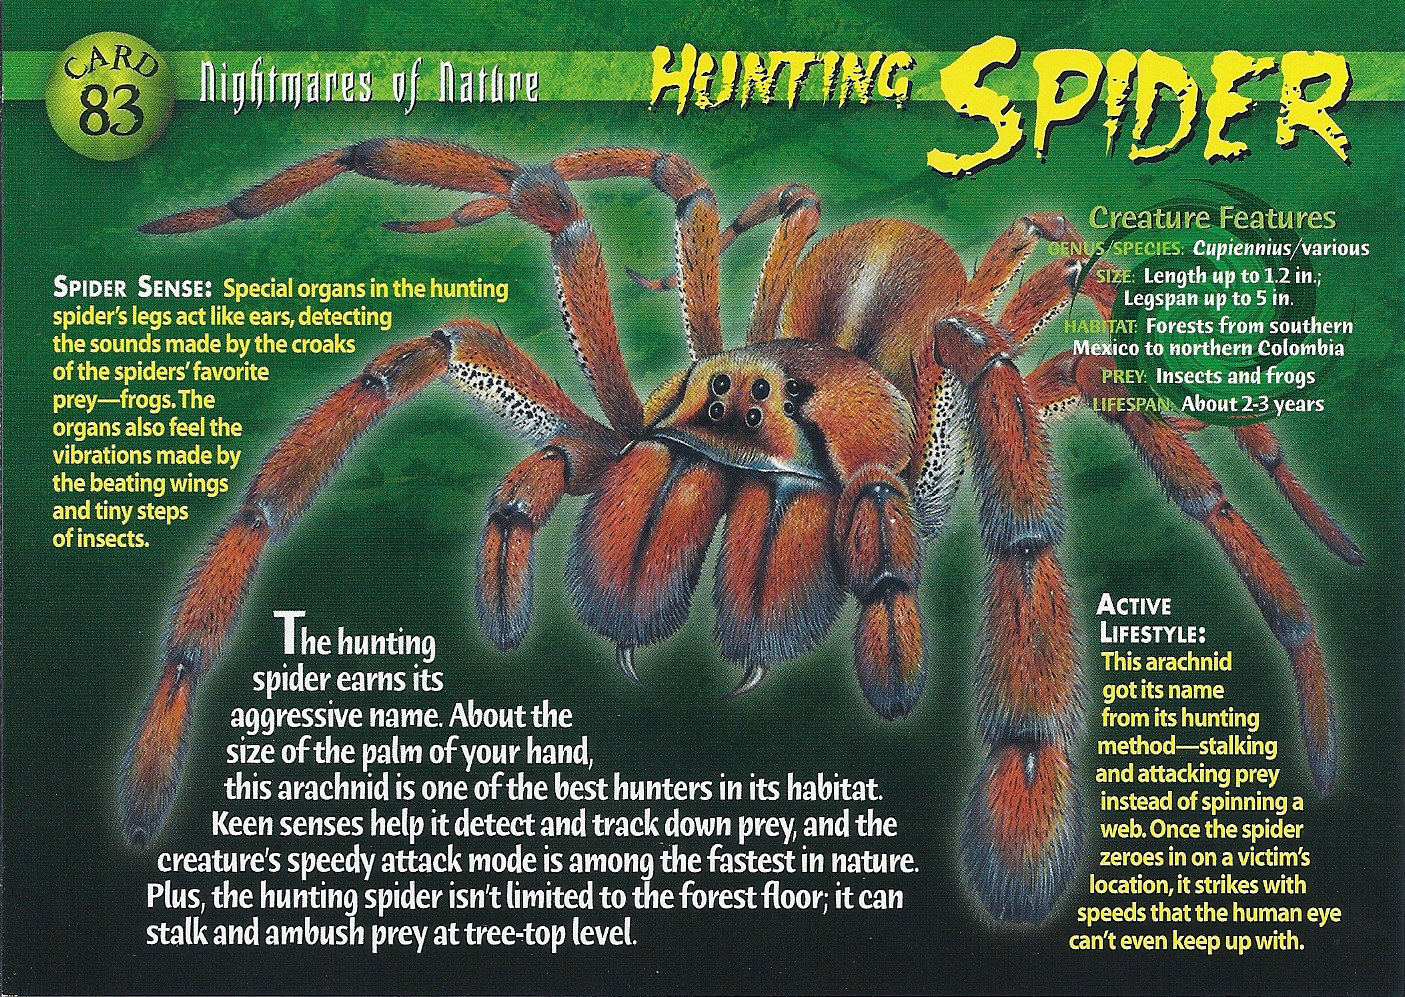 Wood Tv 8 Mosquito Hunting Spider | Weird...